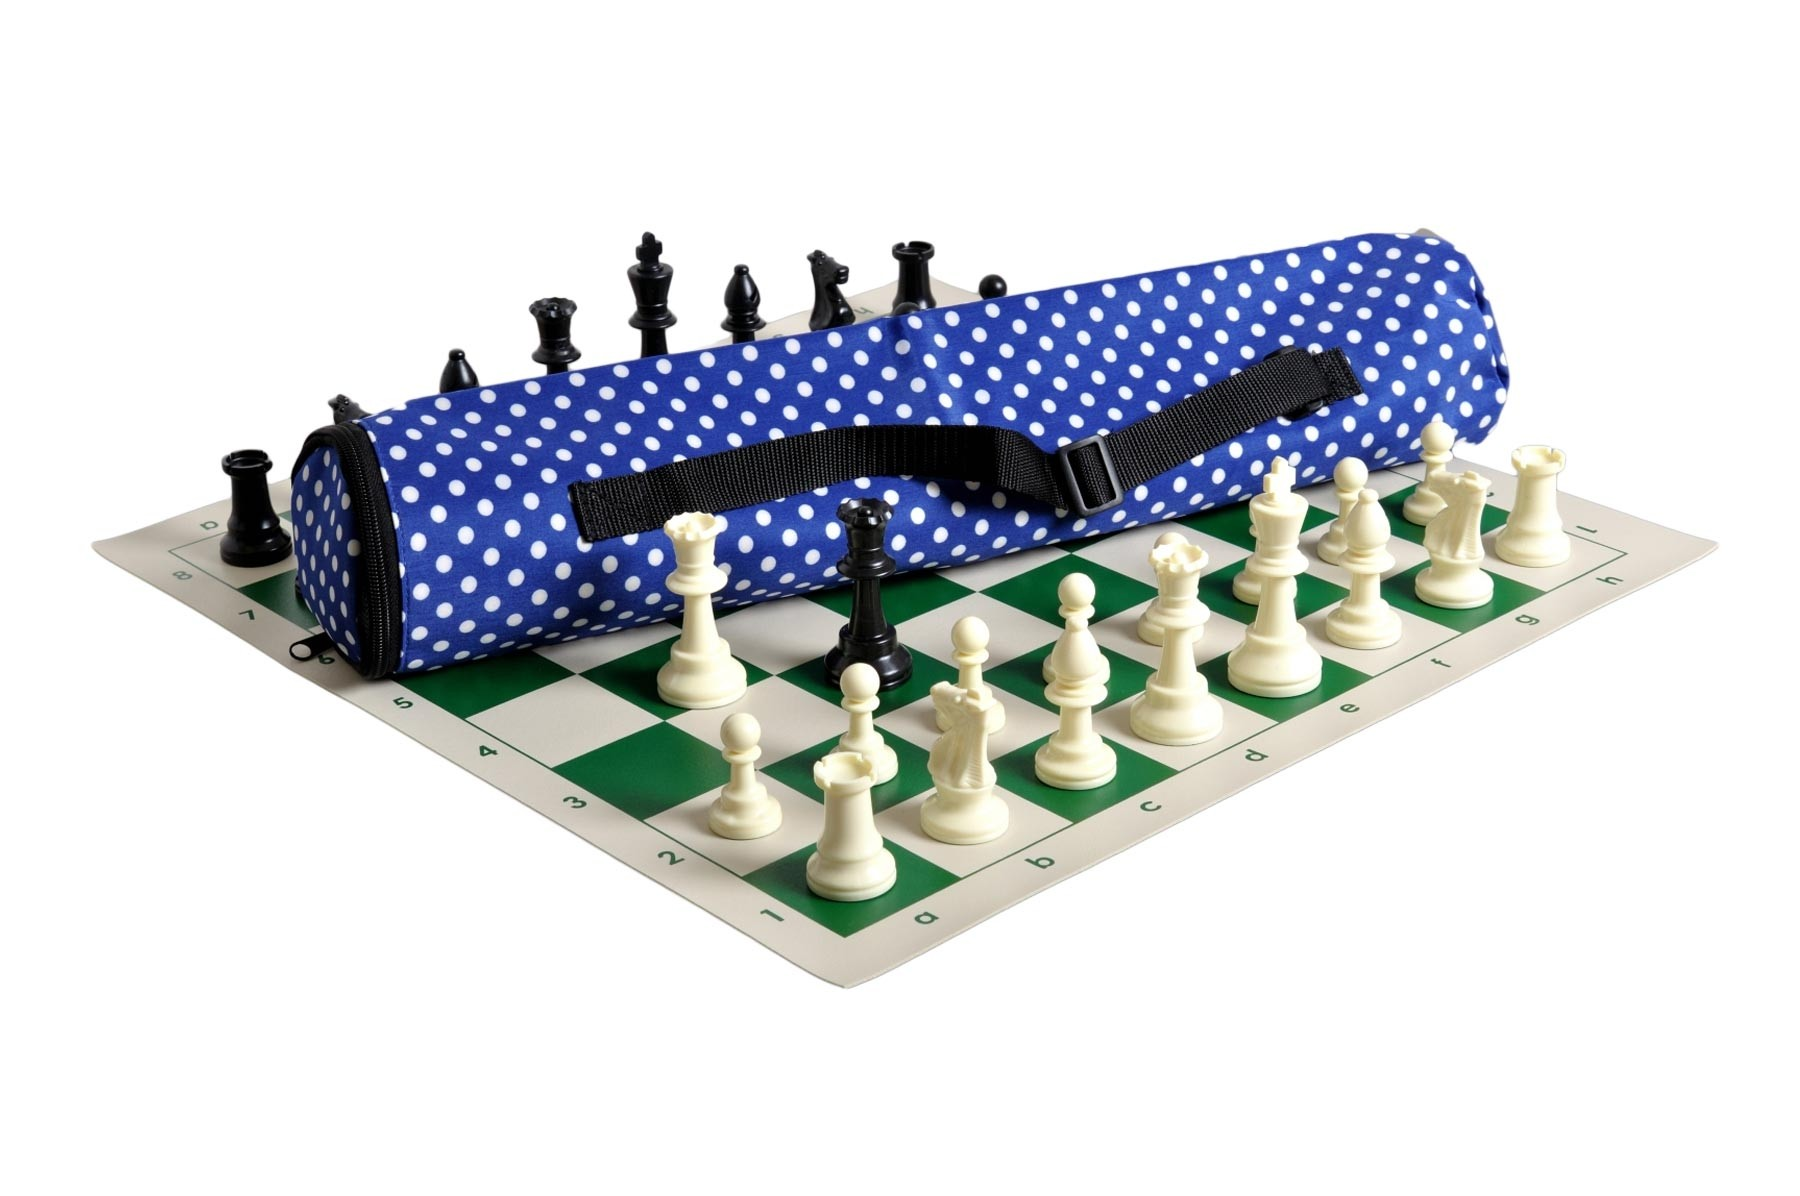 Forest Green Bag Single Weighted Quiver Chess Set Combination Board